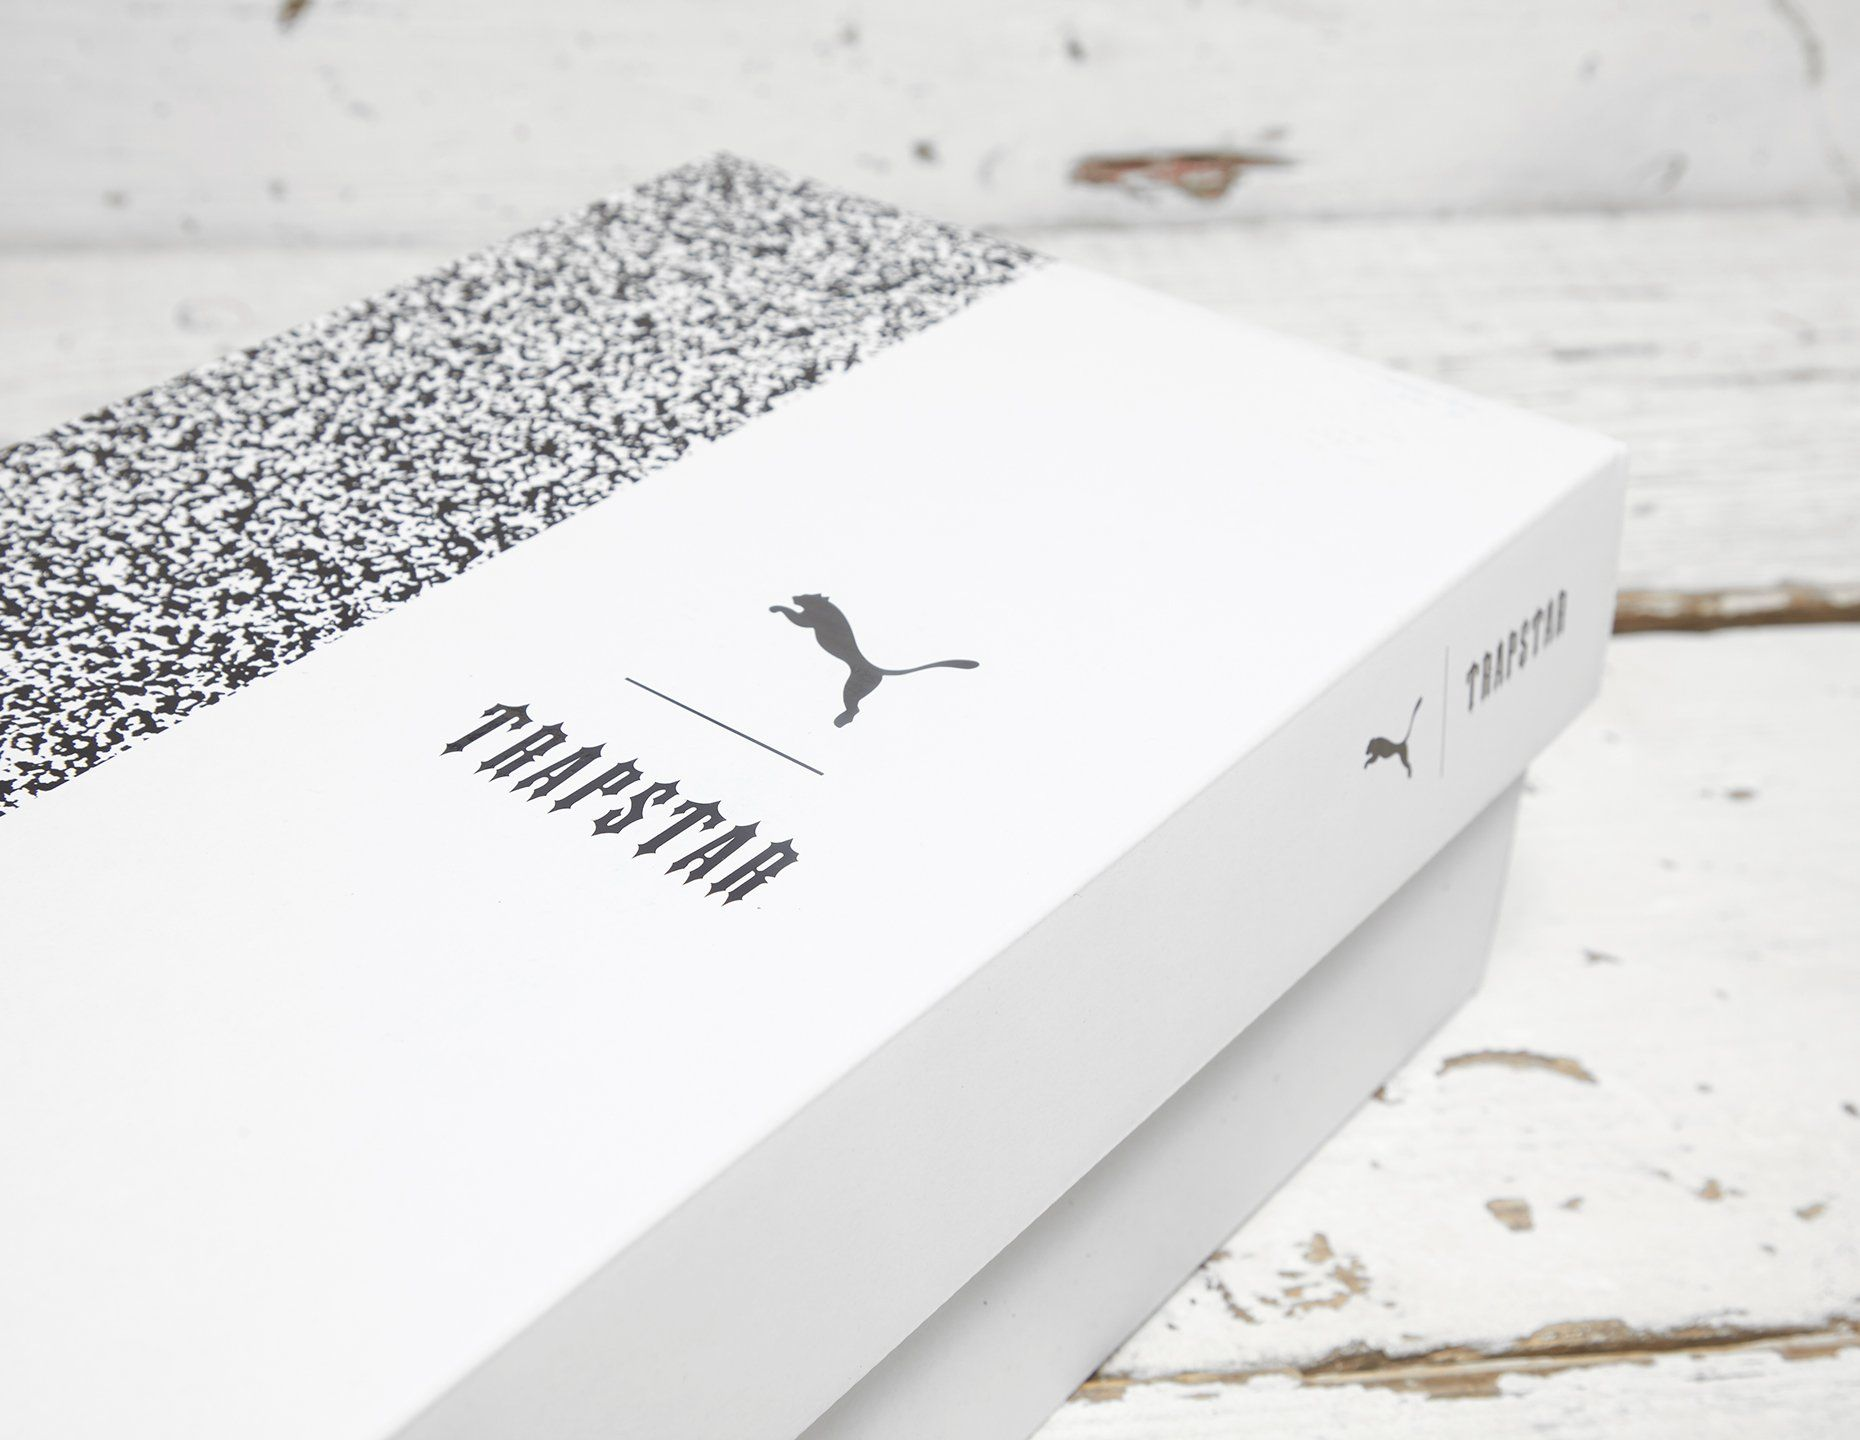 PUMA x Trapstar Clyde Perforated